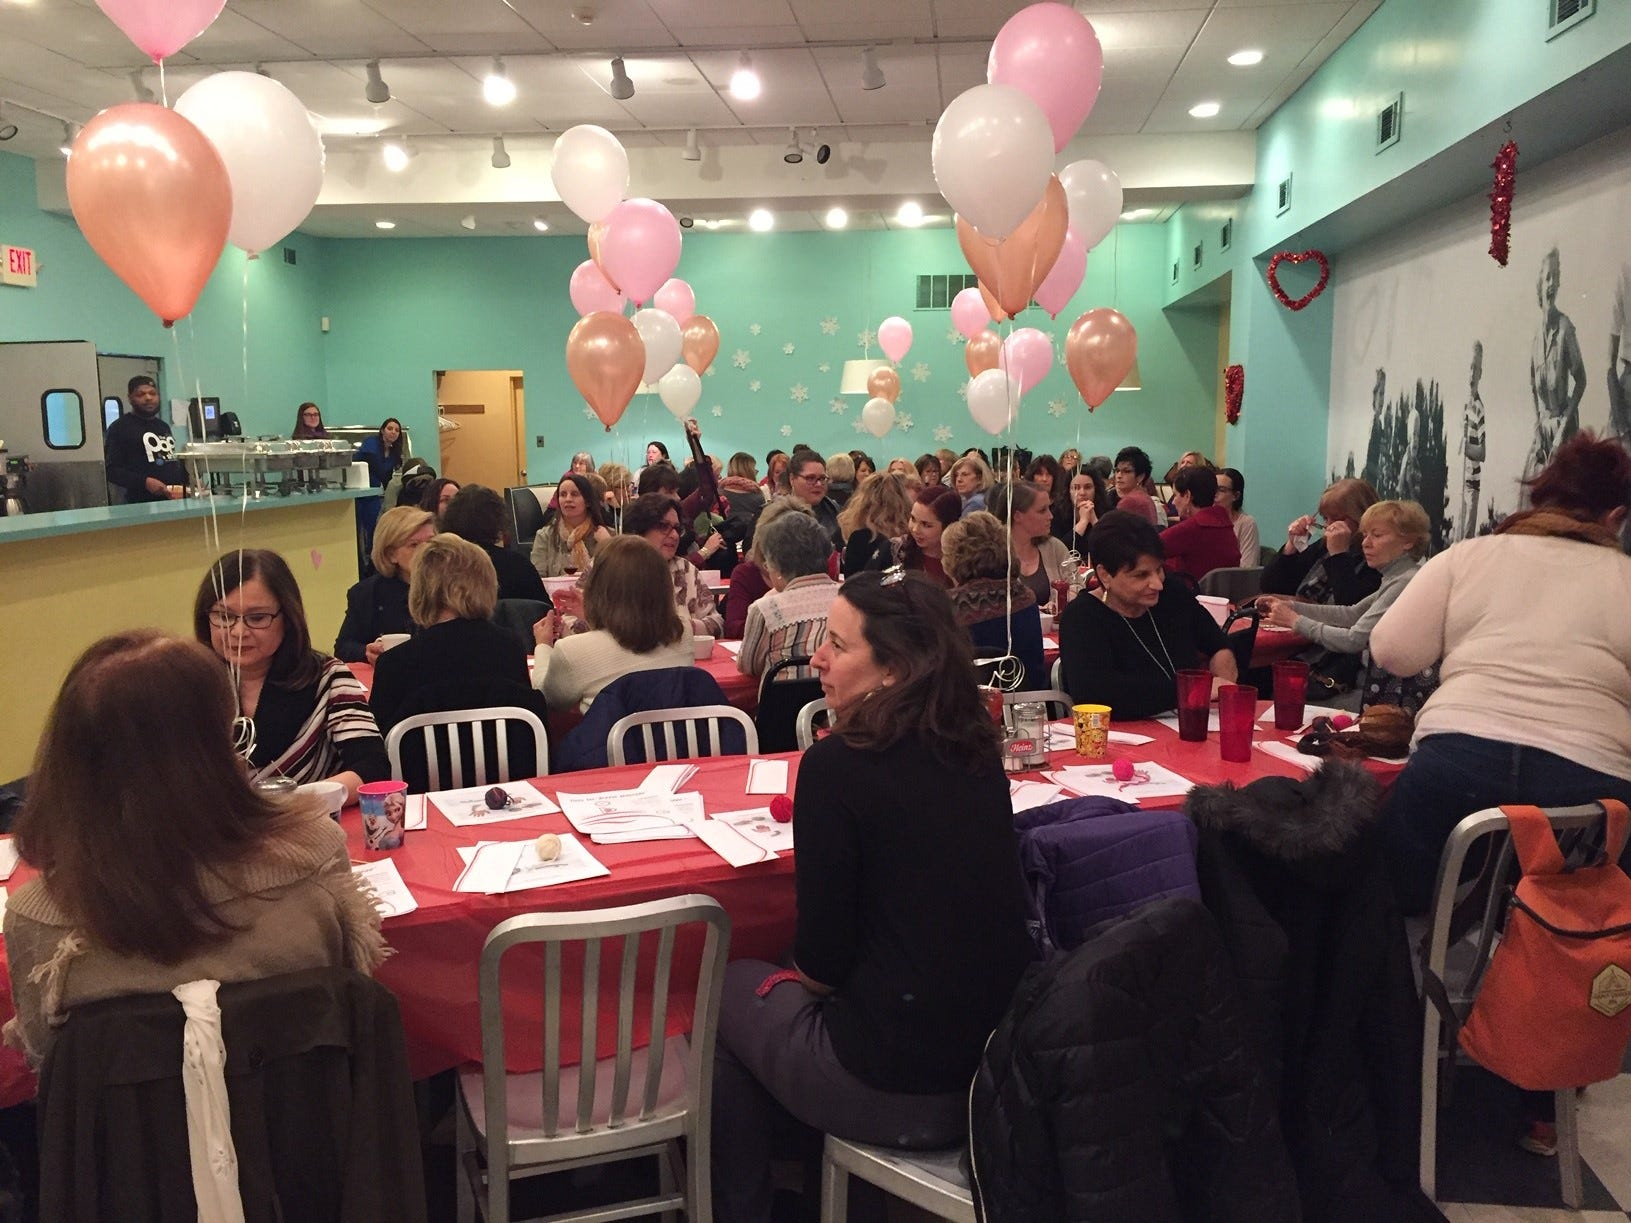 Guests mingle during the Galentine's Celebration at The Pop Shop in Collingswood.